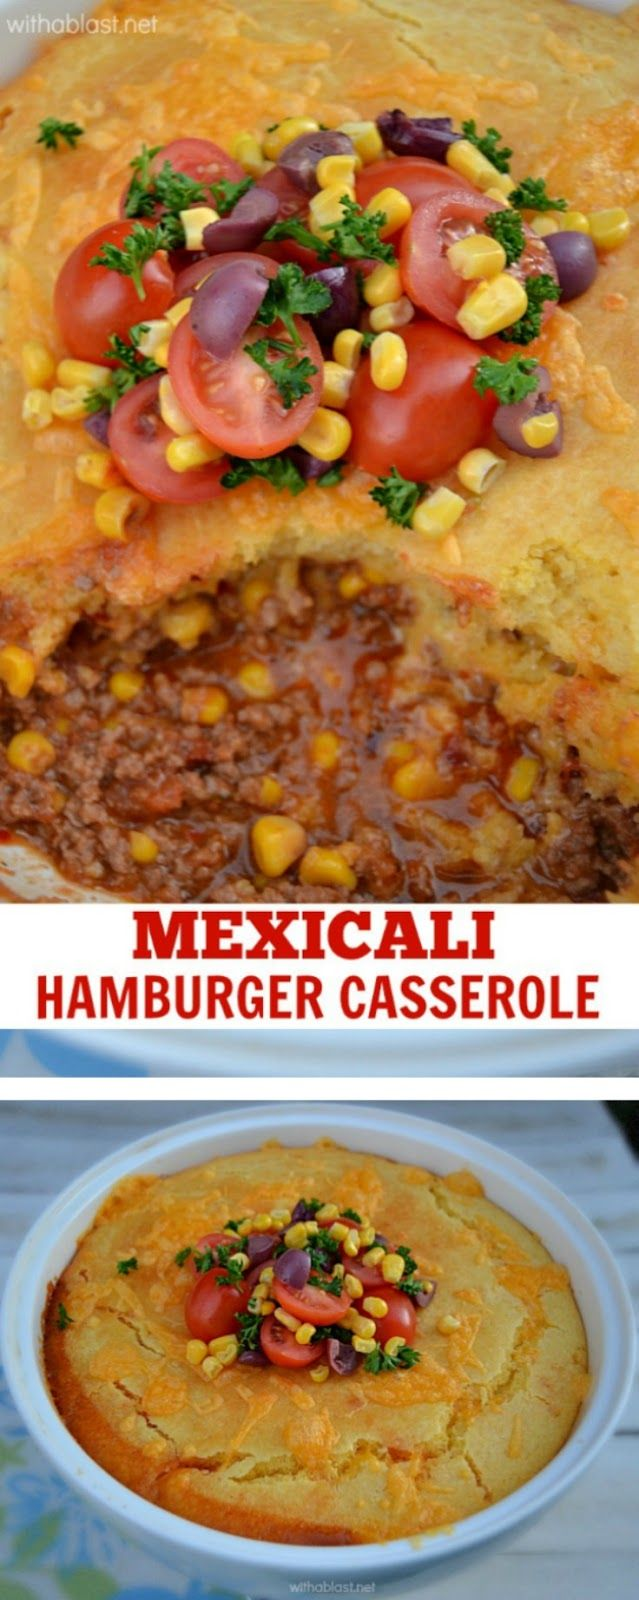 Mouthwatering Mexicali Hamburger Casserole with a cornbread topping ~ Click image to find more popular food & drink Pinterest pins